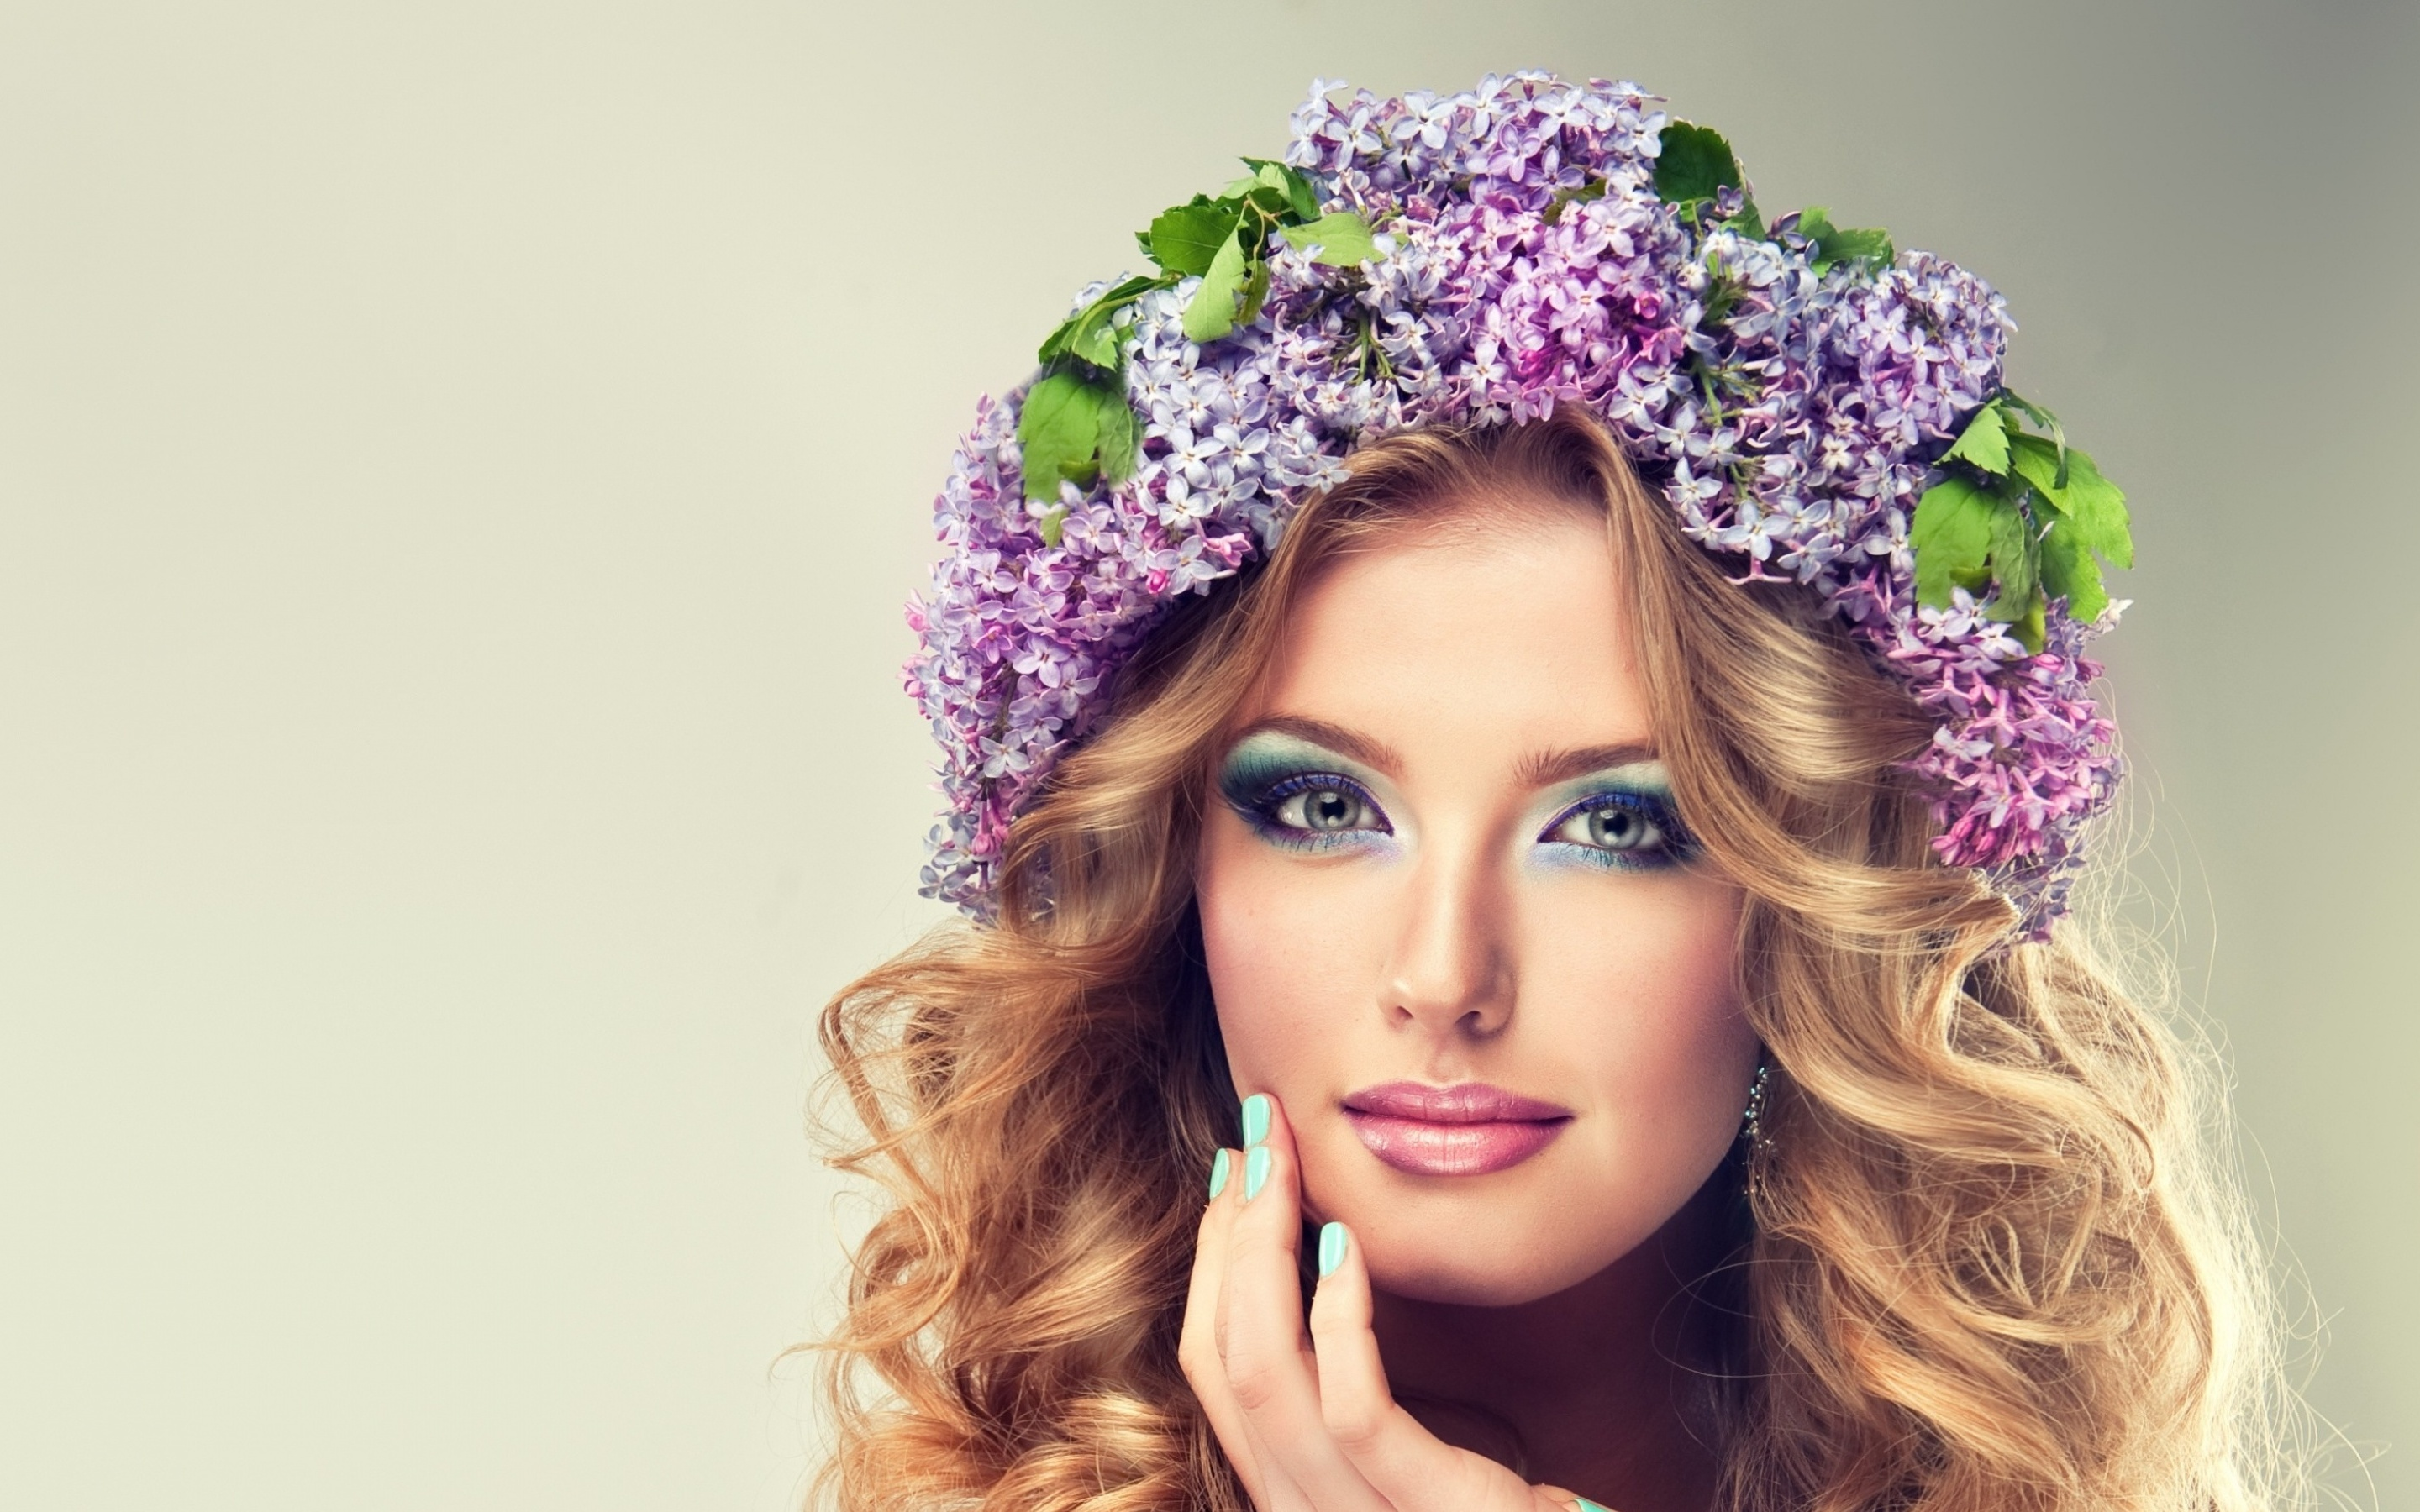 Beautiful Model Of Flowers Lilac With Curly Long Hair